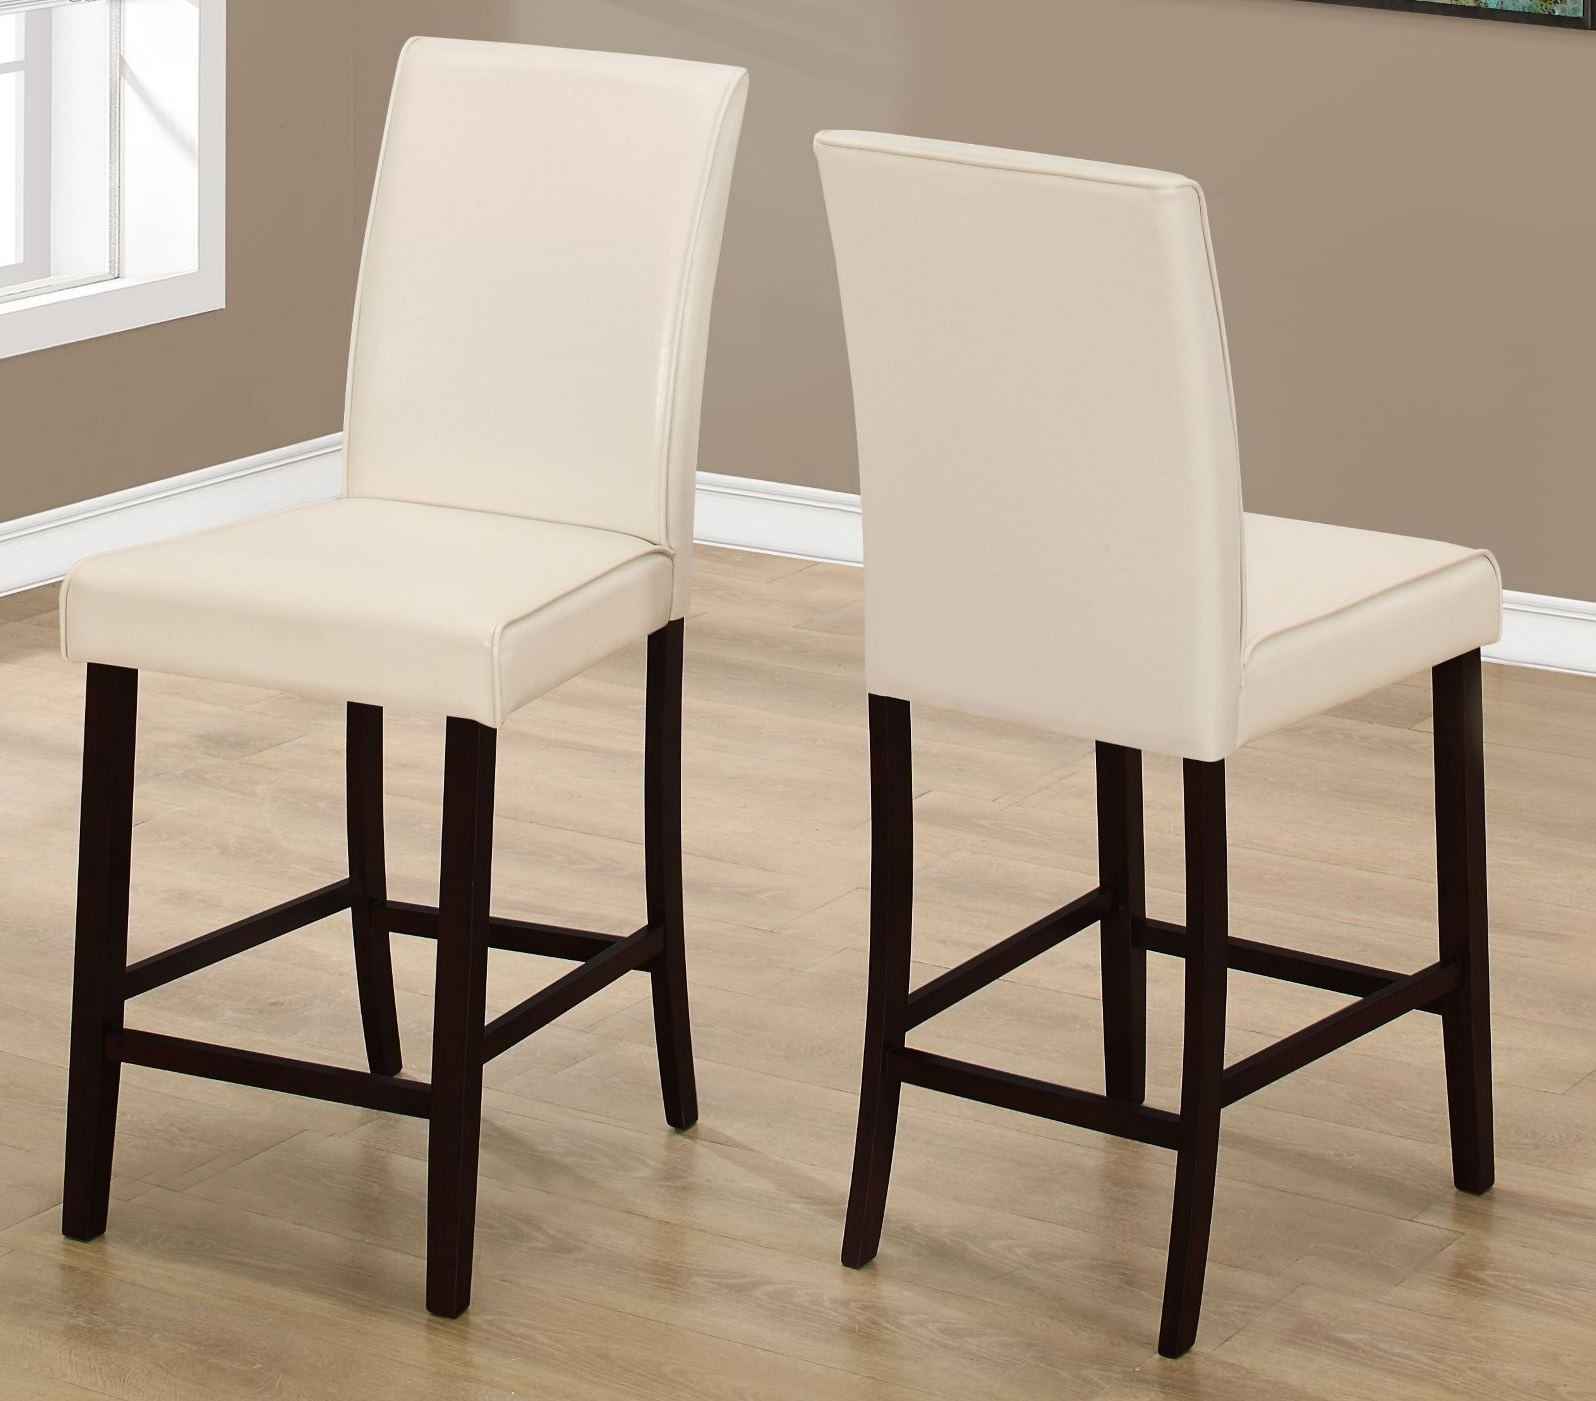 Ivory Leather Dining Room Chairs: Ivory Leather Counter Height Dining Chair Set Of 2, 1903, Monarch